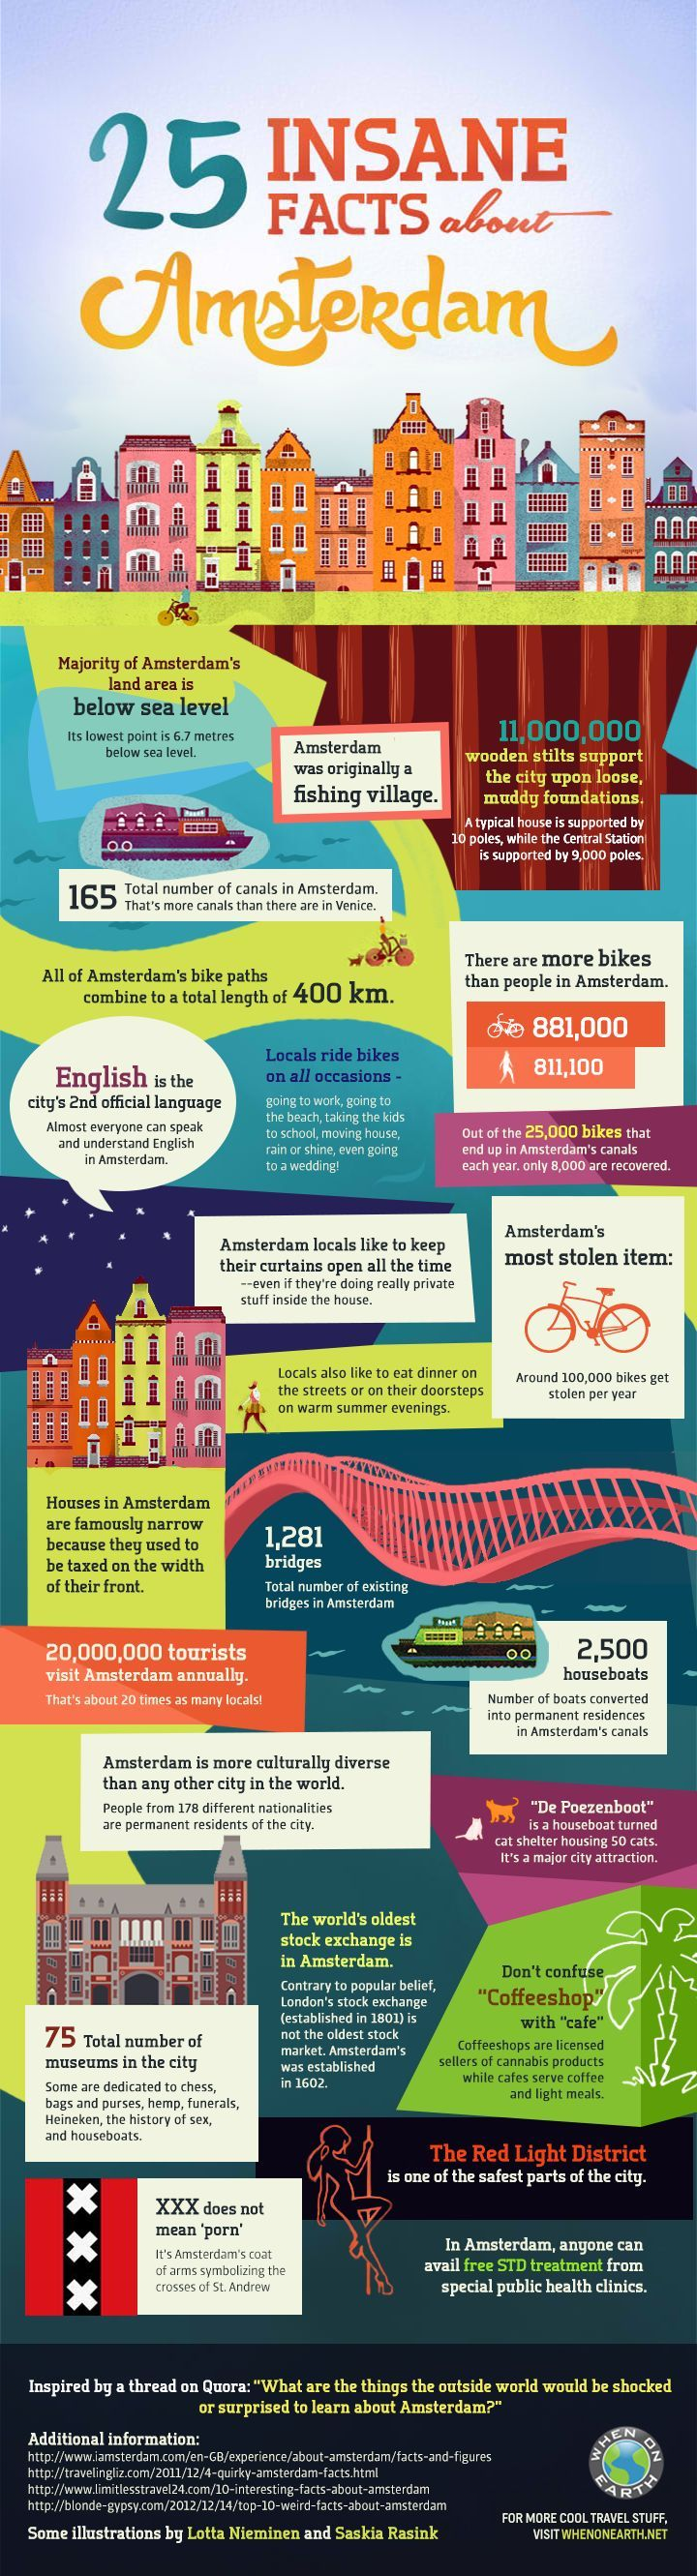 25 Insane Facts About Amsterdam   #infographic #Travel #Amsterdam